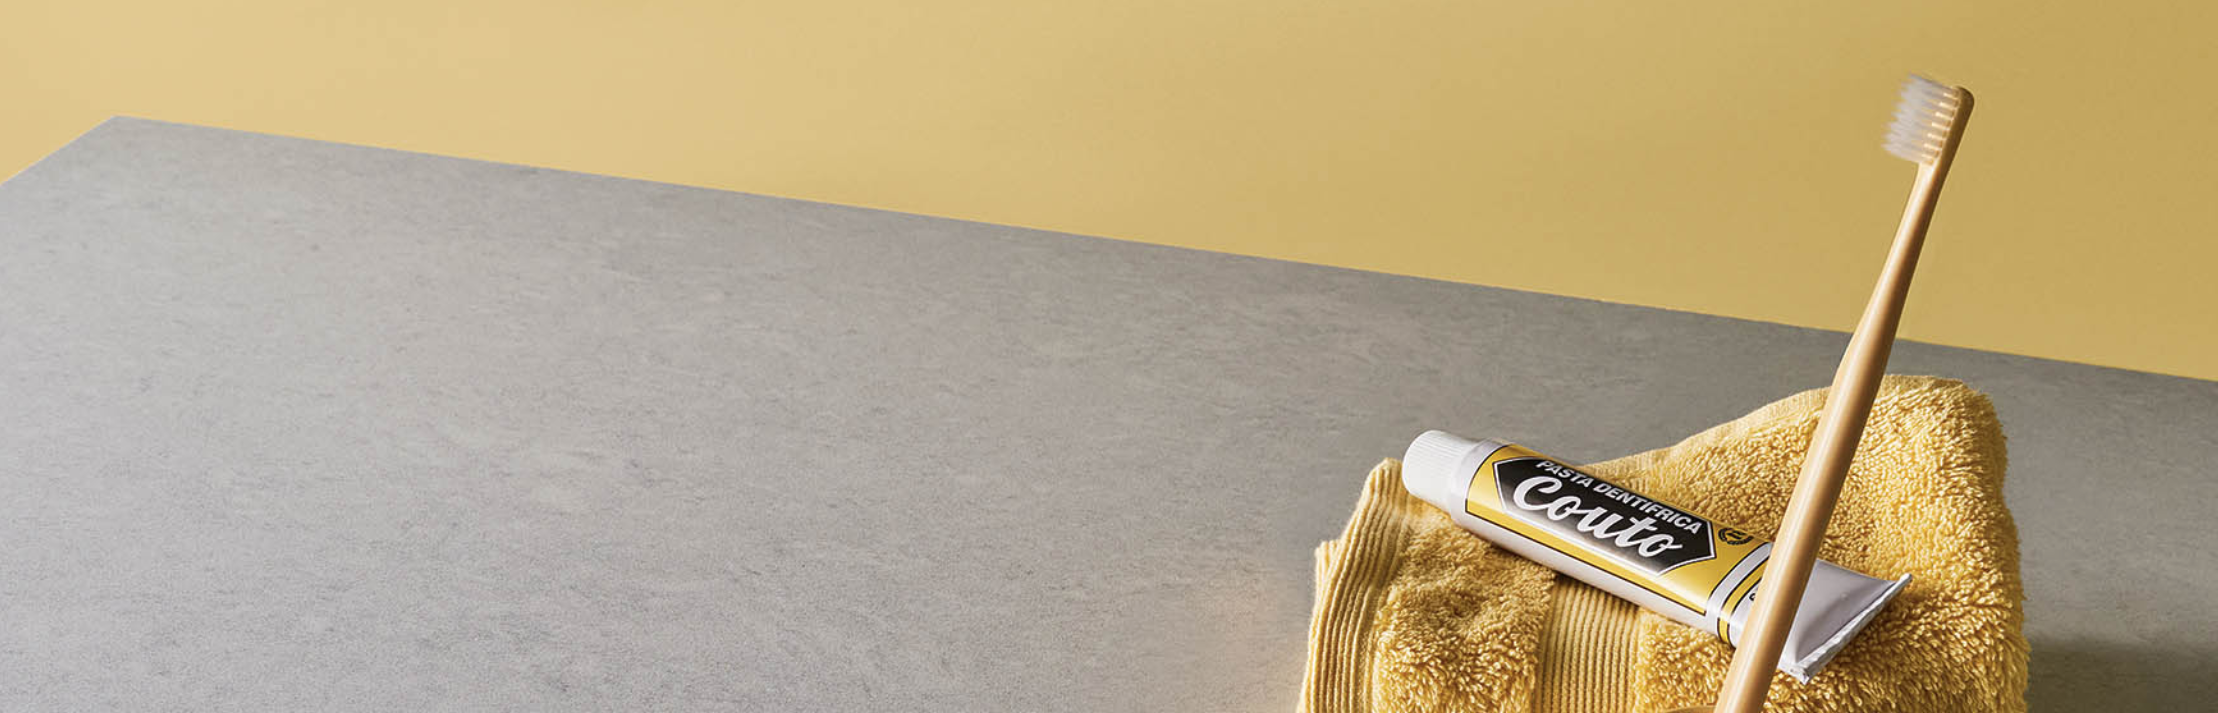 CAESARSTONE | FLANNEL GREY | DETAIL